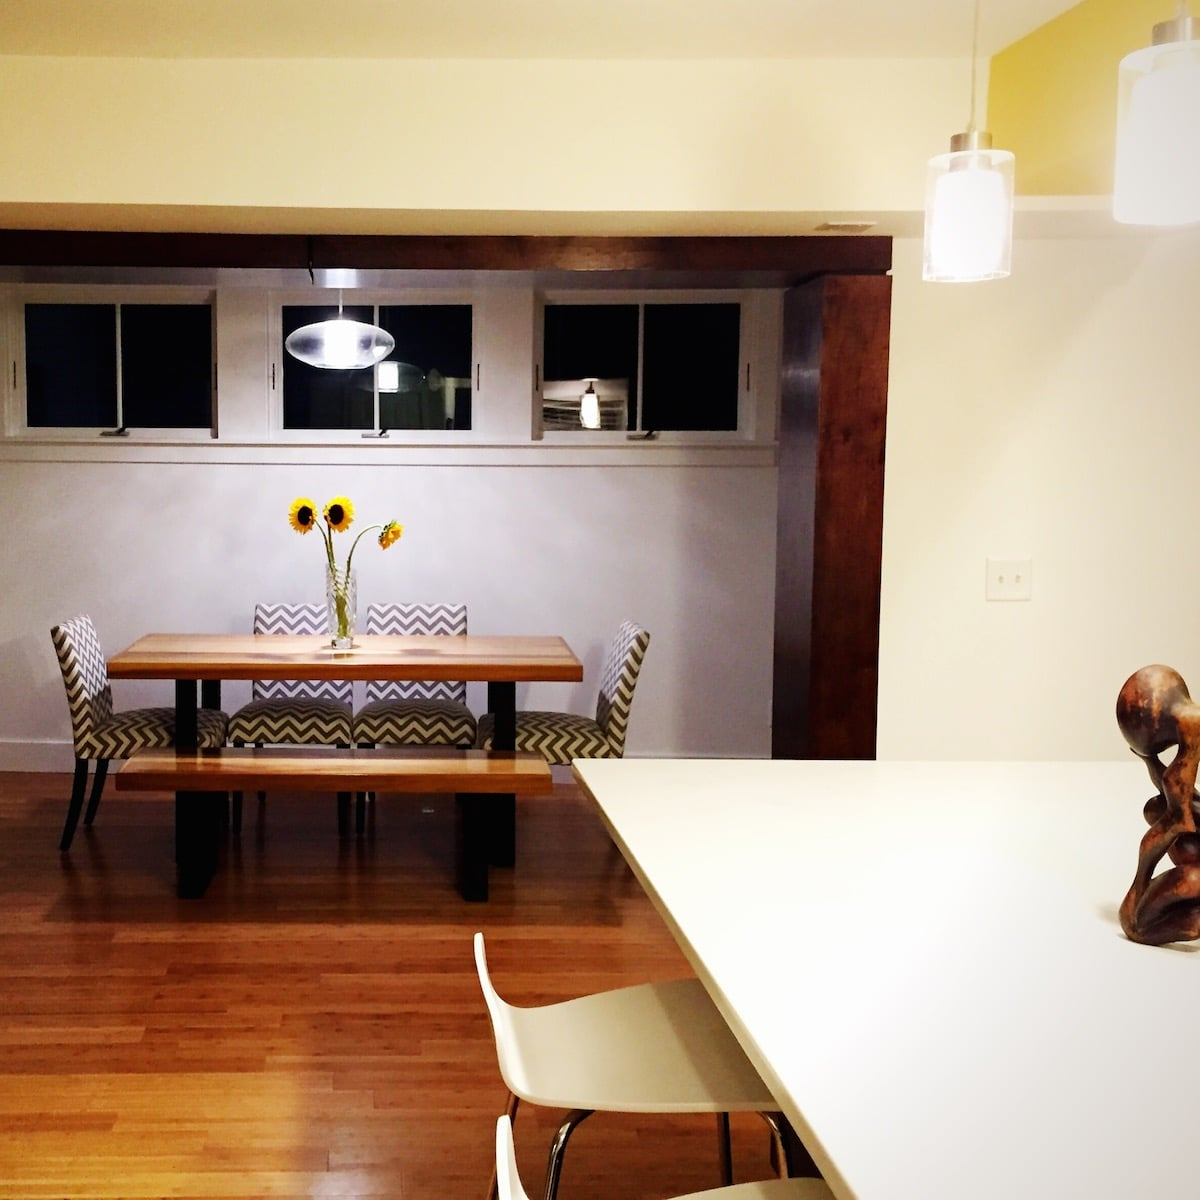 View from our recently renovated kitchen into our newly added dining room. Interesting fun fact. That little wooden sculpture in the foreground was purchased from a street vendor in Rome. True story.